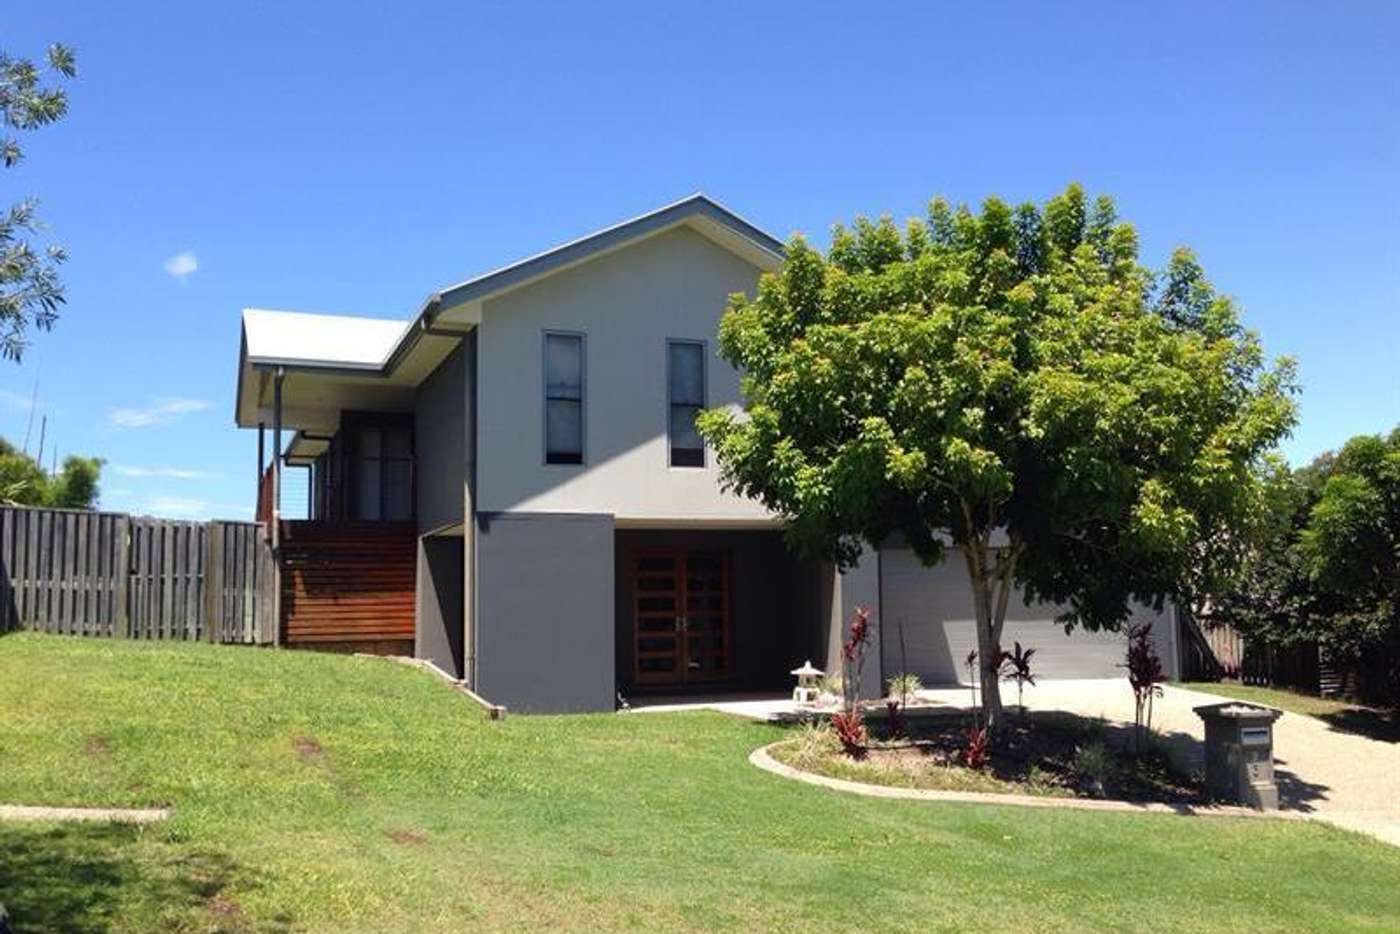 Main view of Homely house listing, 3 Berrimilla Lane, Coomera QLD 4209